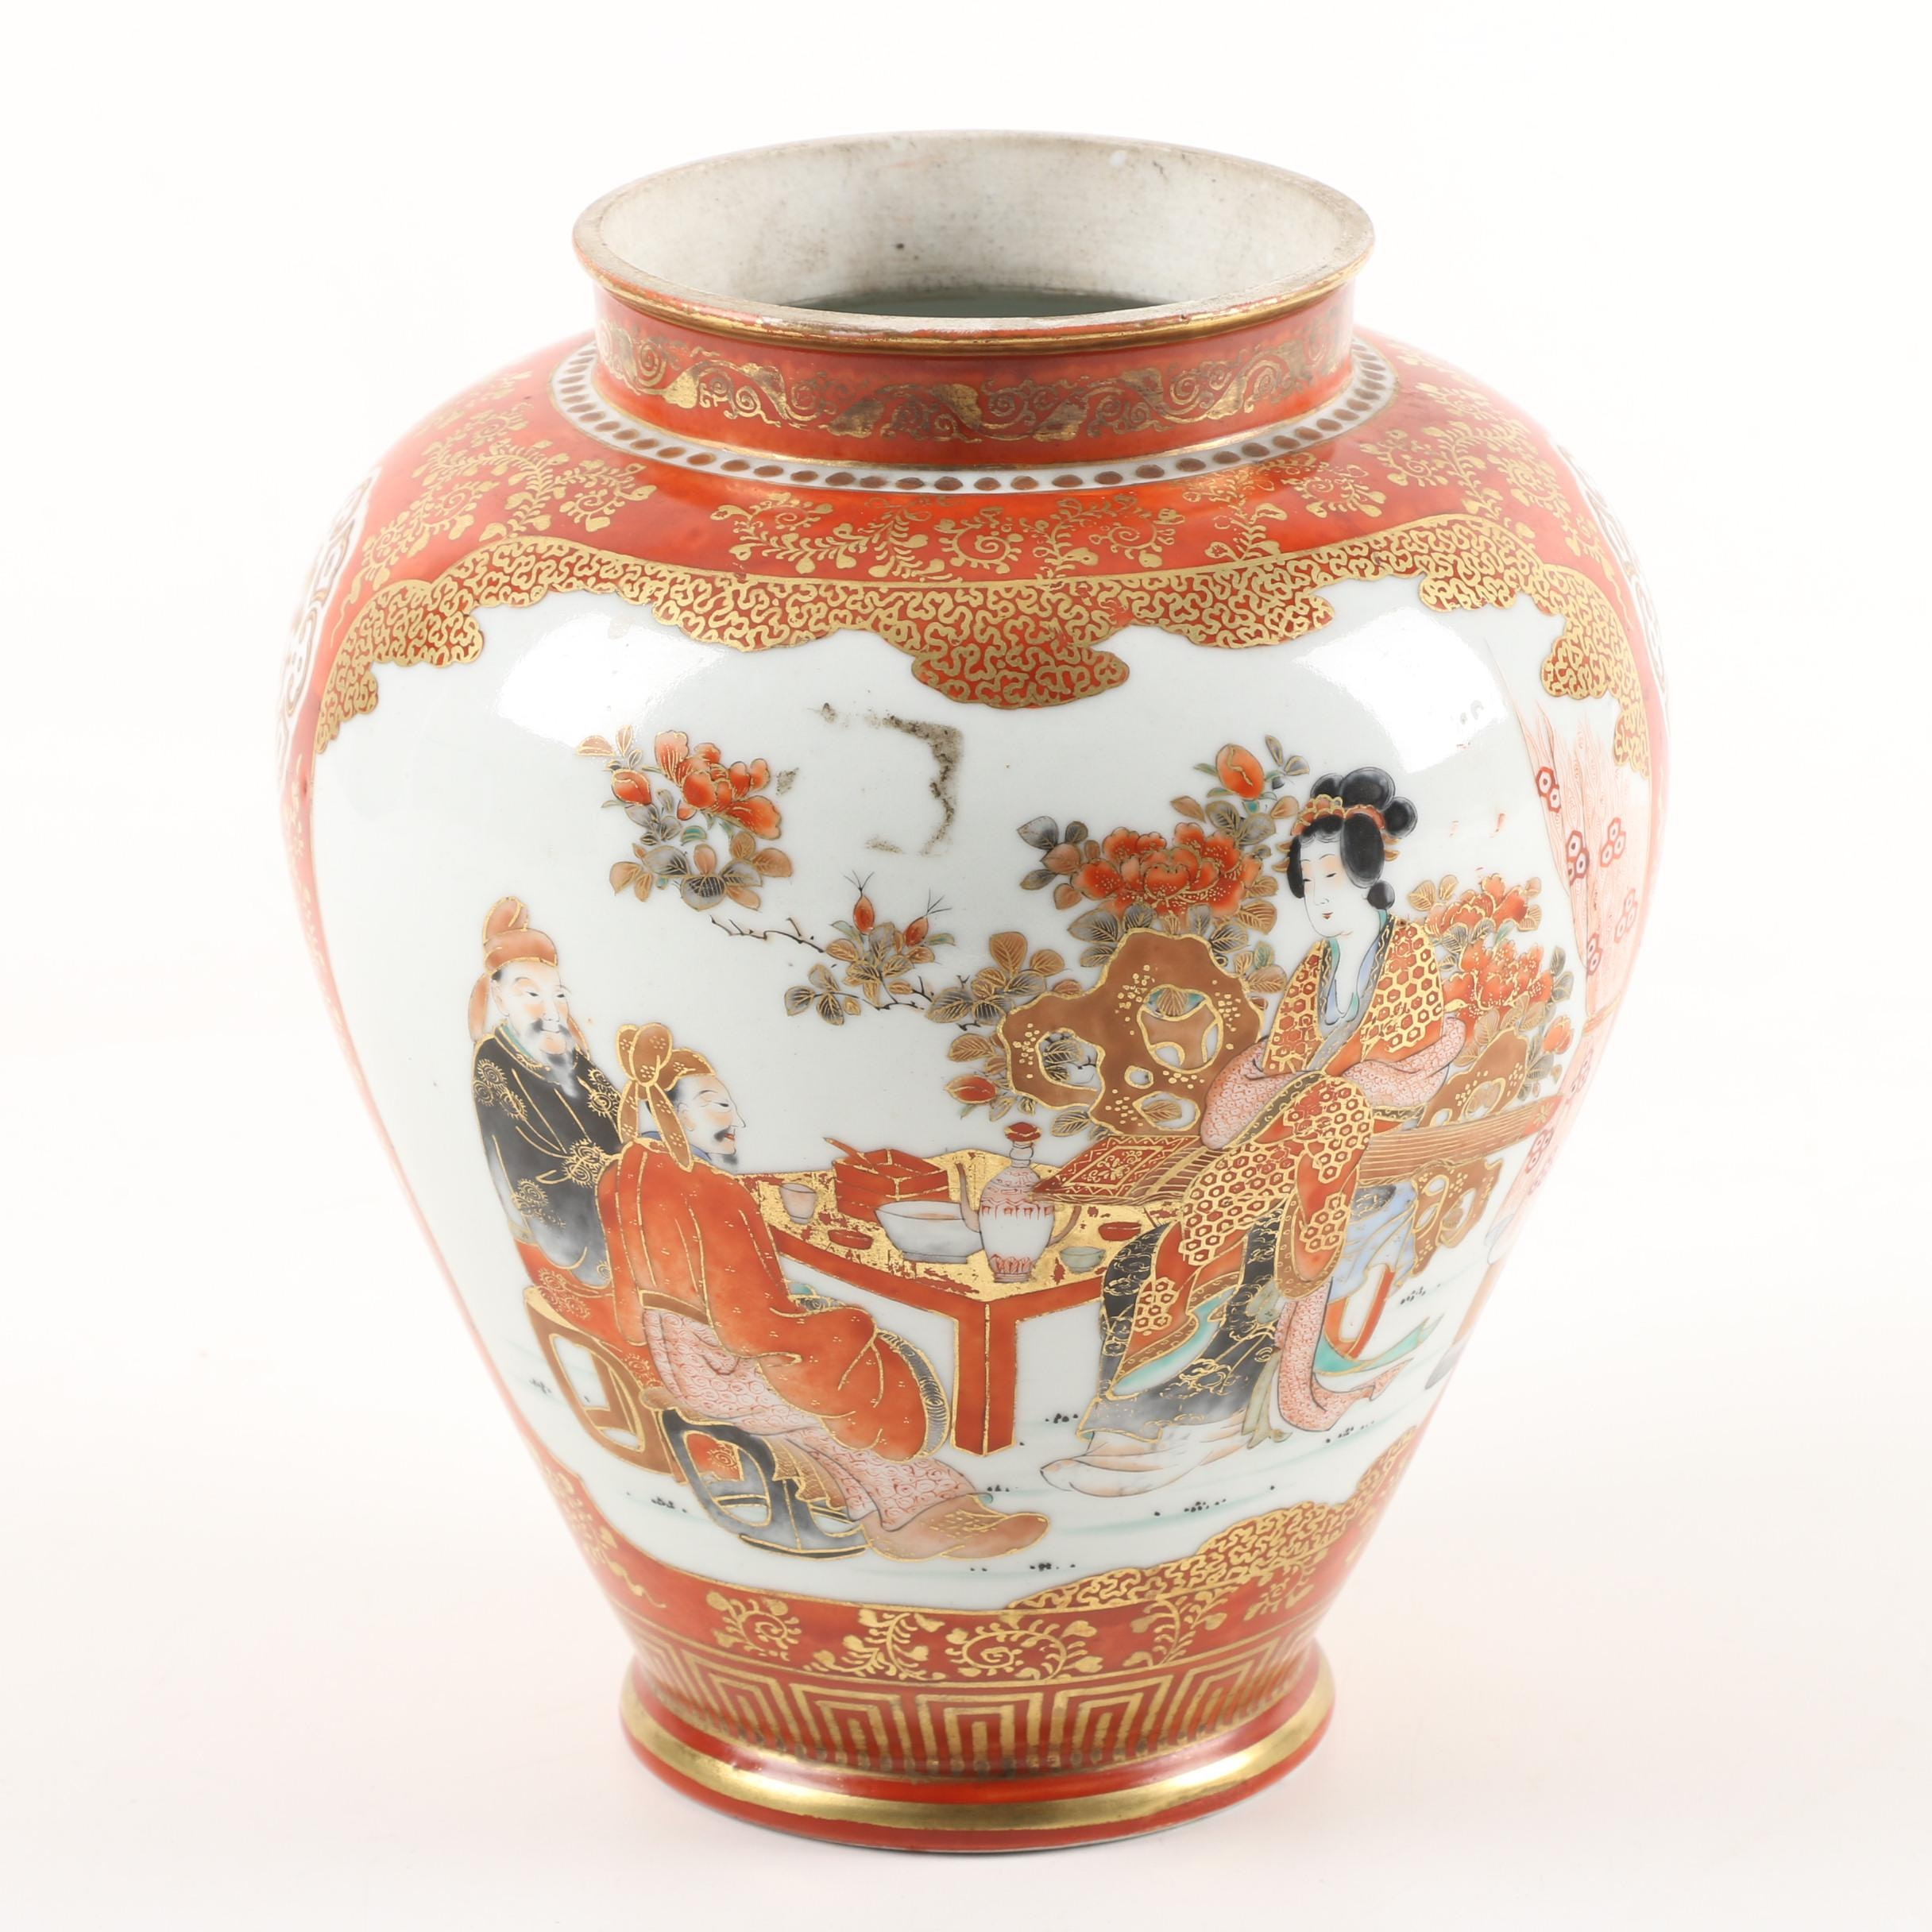 Chinese Hand-Painted and Gilt Accented Floral and Figurative Porcelain Vase